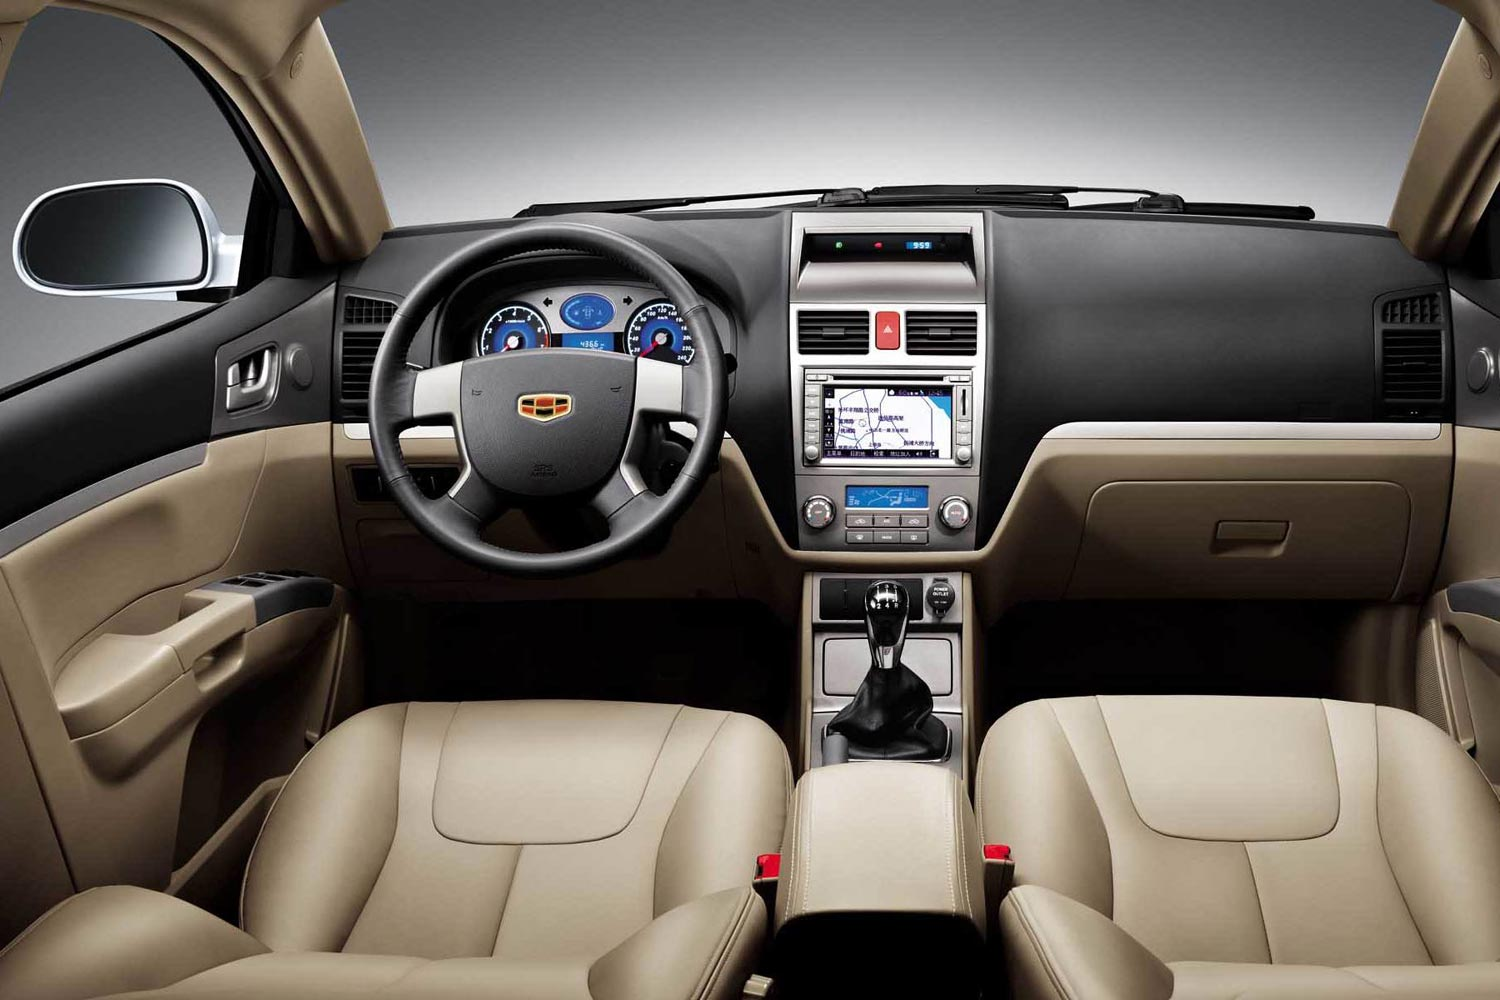 Geely Emgrand 1.5 2010 photo - 12